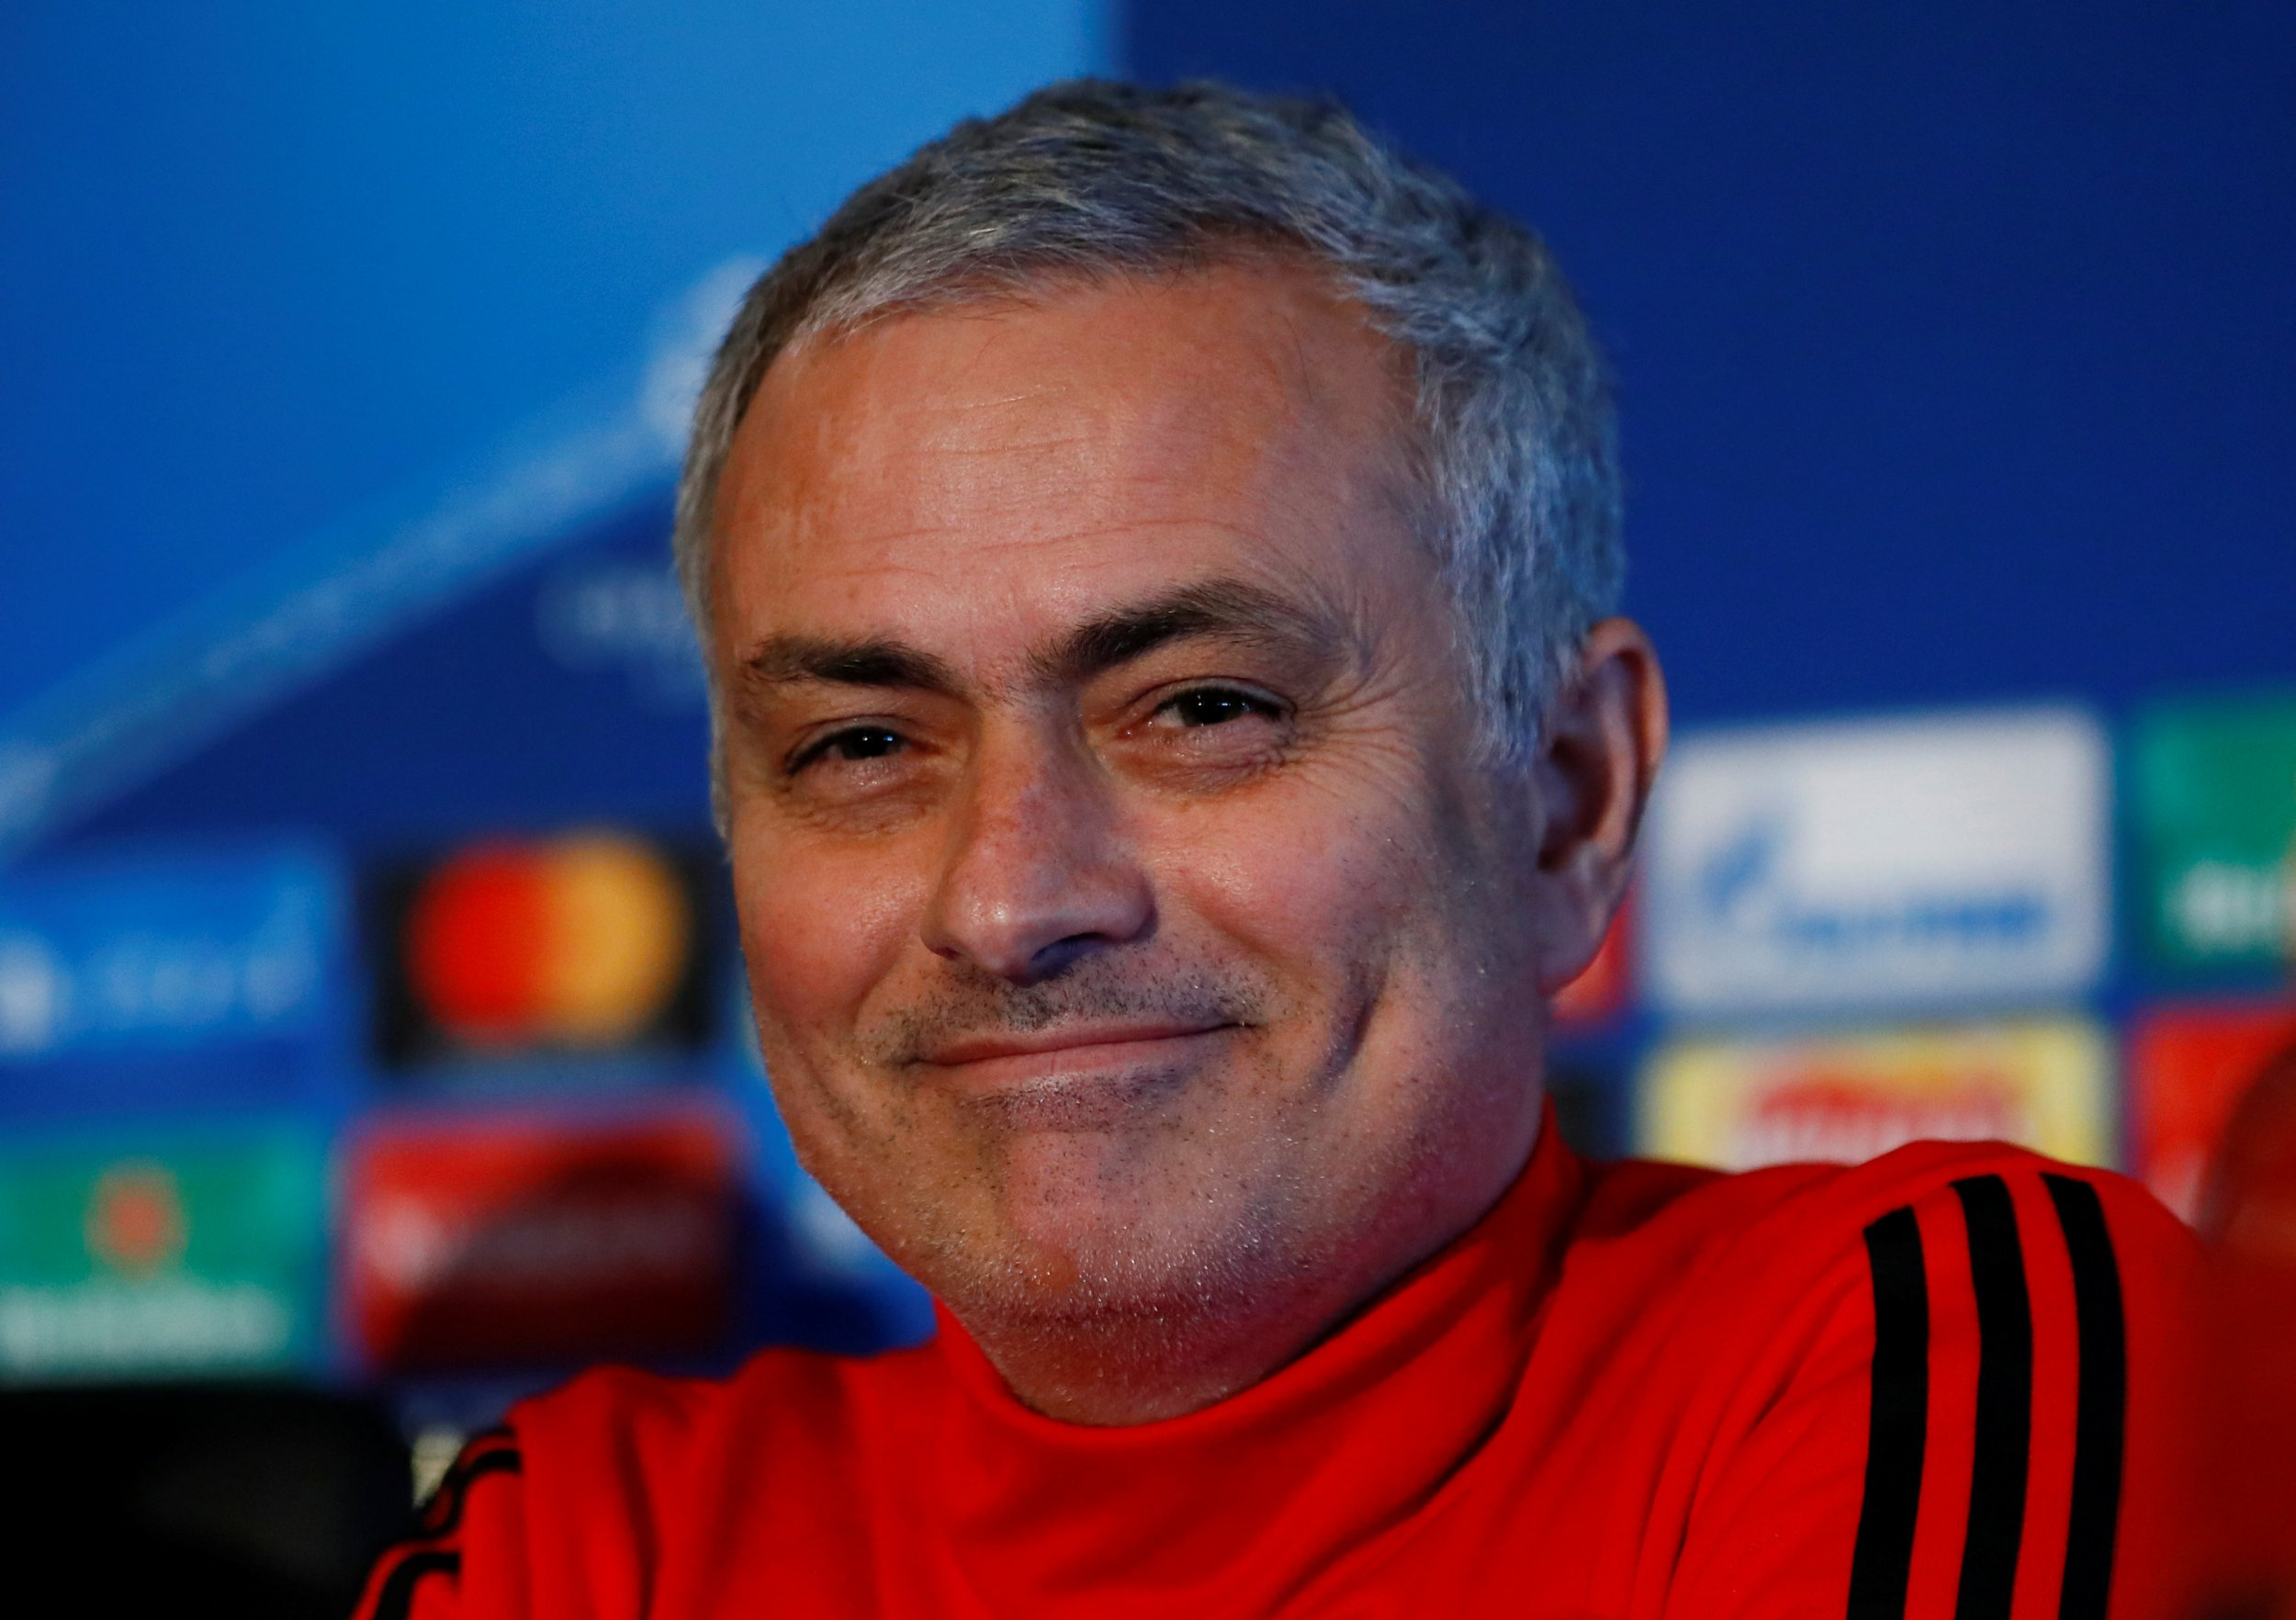 Jose Mourinho smiles in a press conference